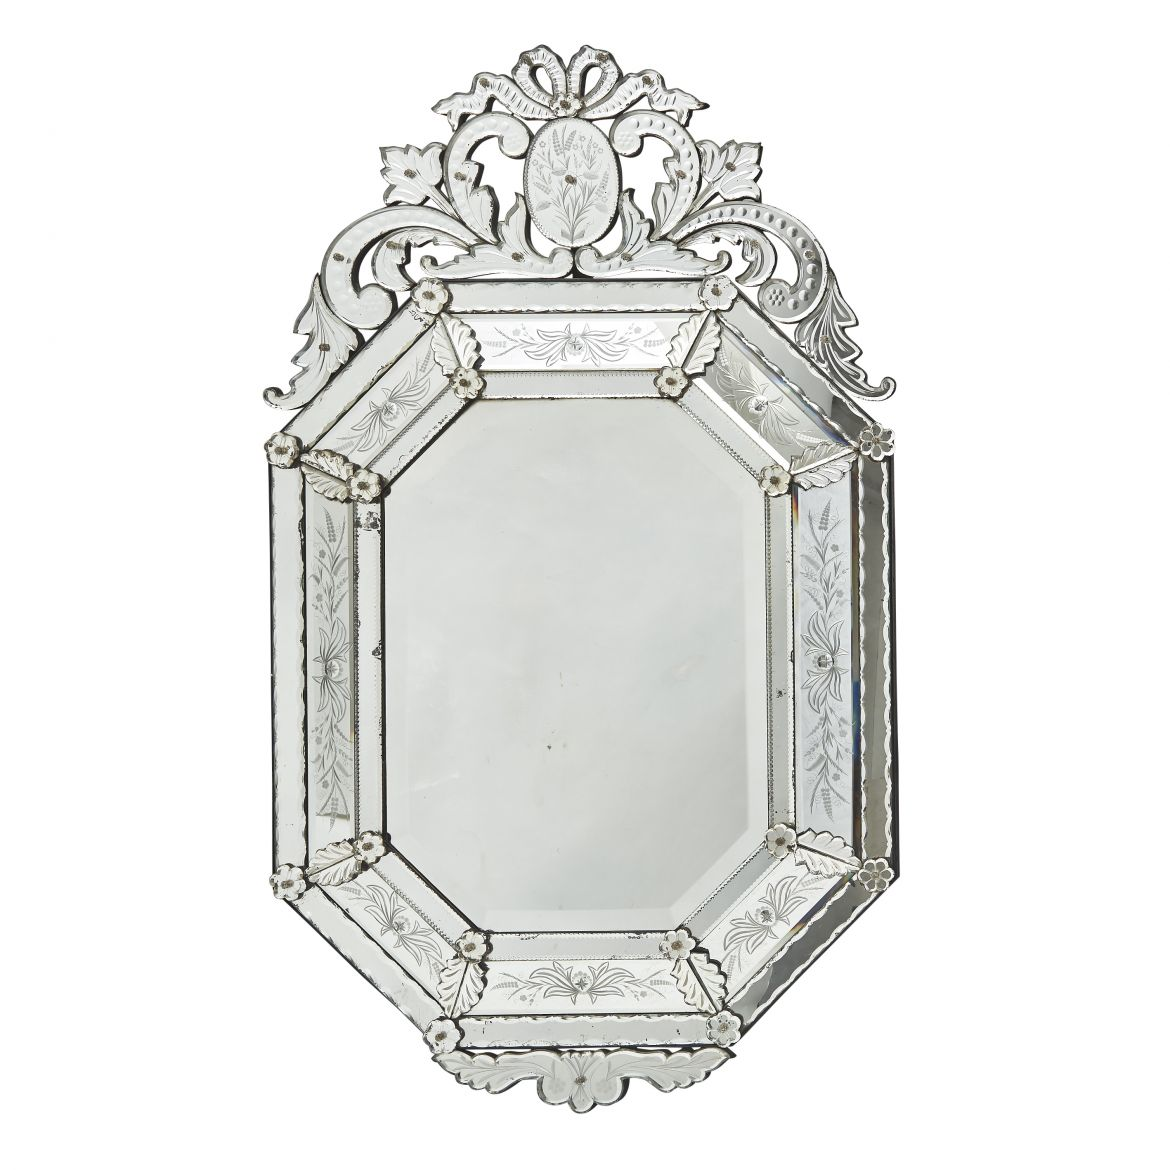 French Venetian Style Floral Engraved Cushion Mirror